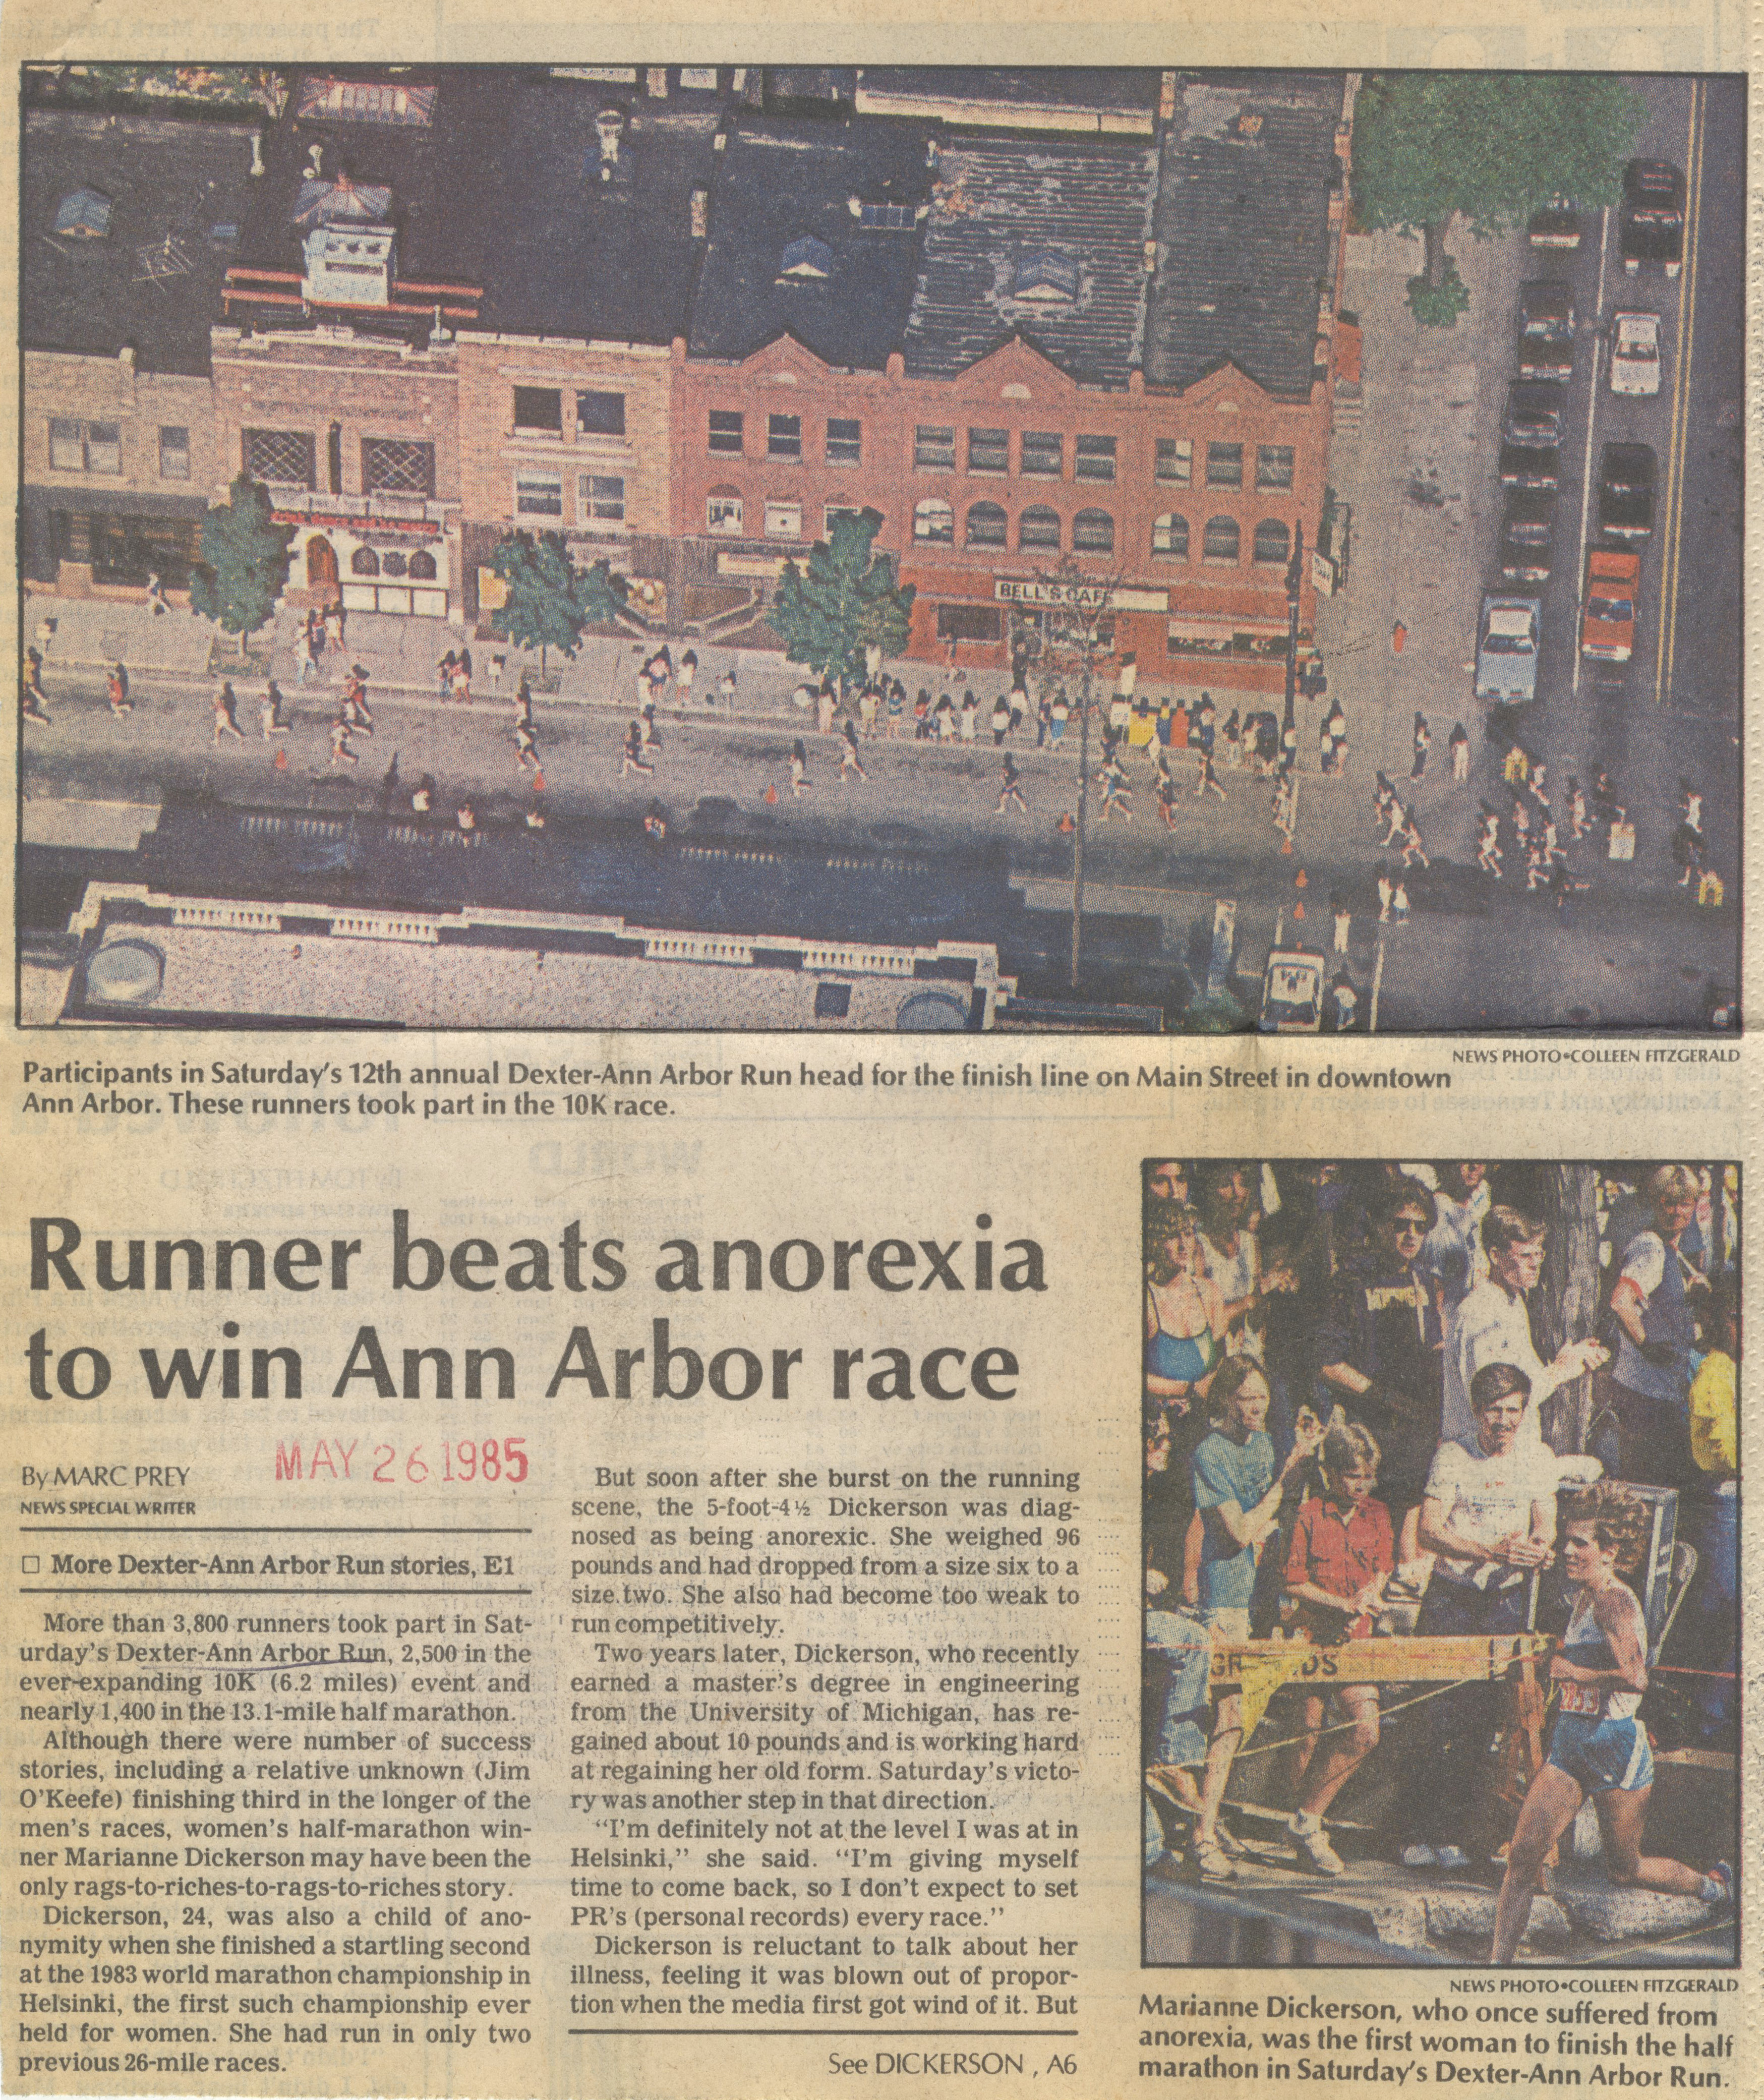 Runner beats anorexia to win Ann Arbor race image